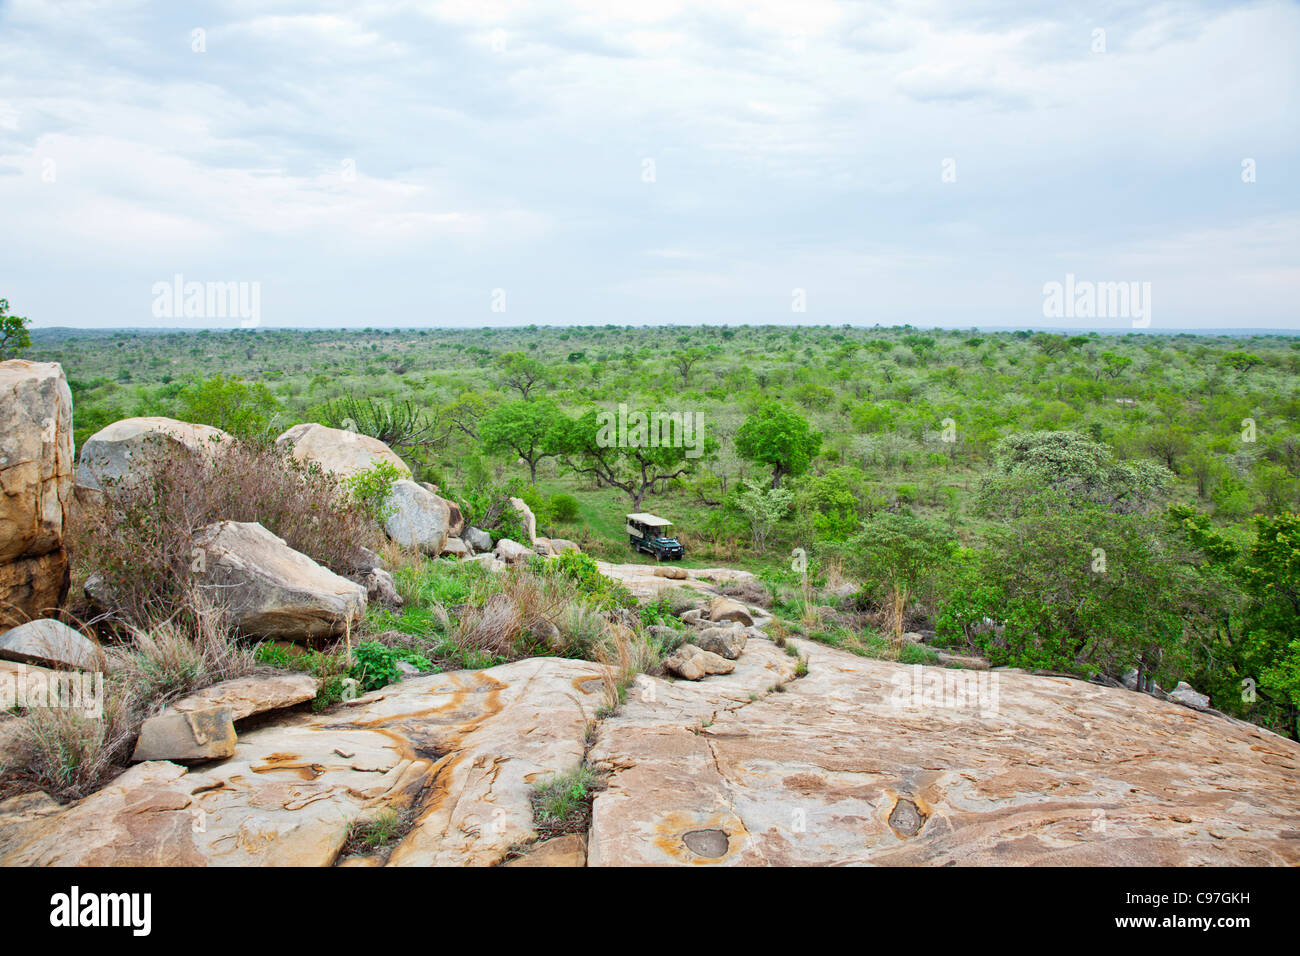 A landscape of the bushveld taken from a granite koppie in the Southern Kruger National Park. - Stock Image